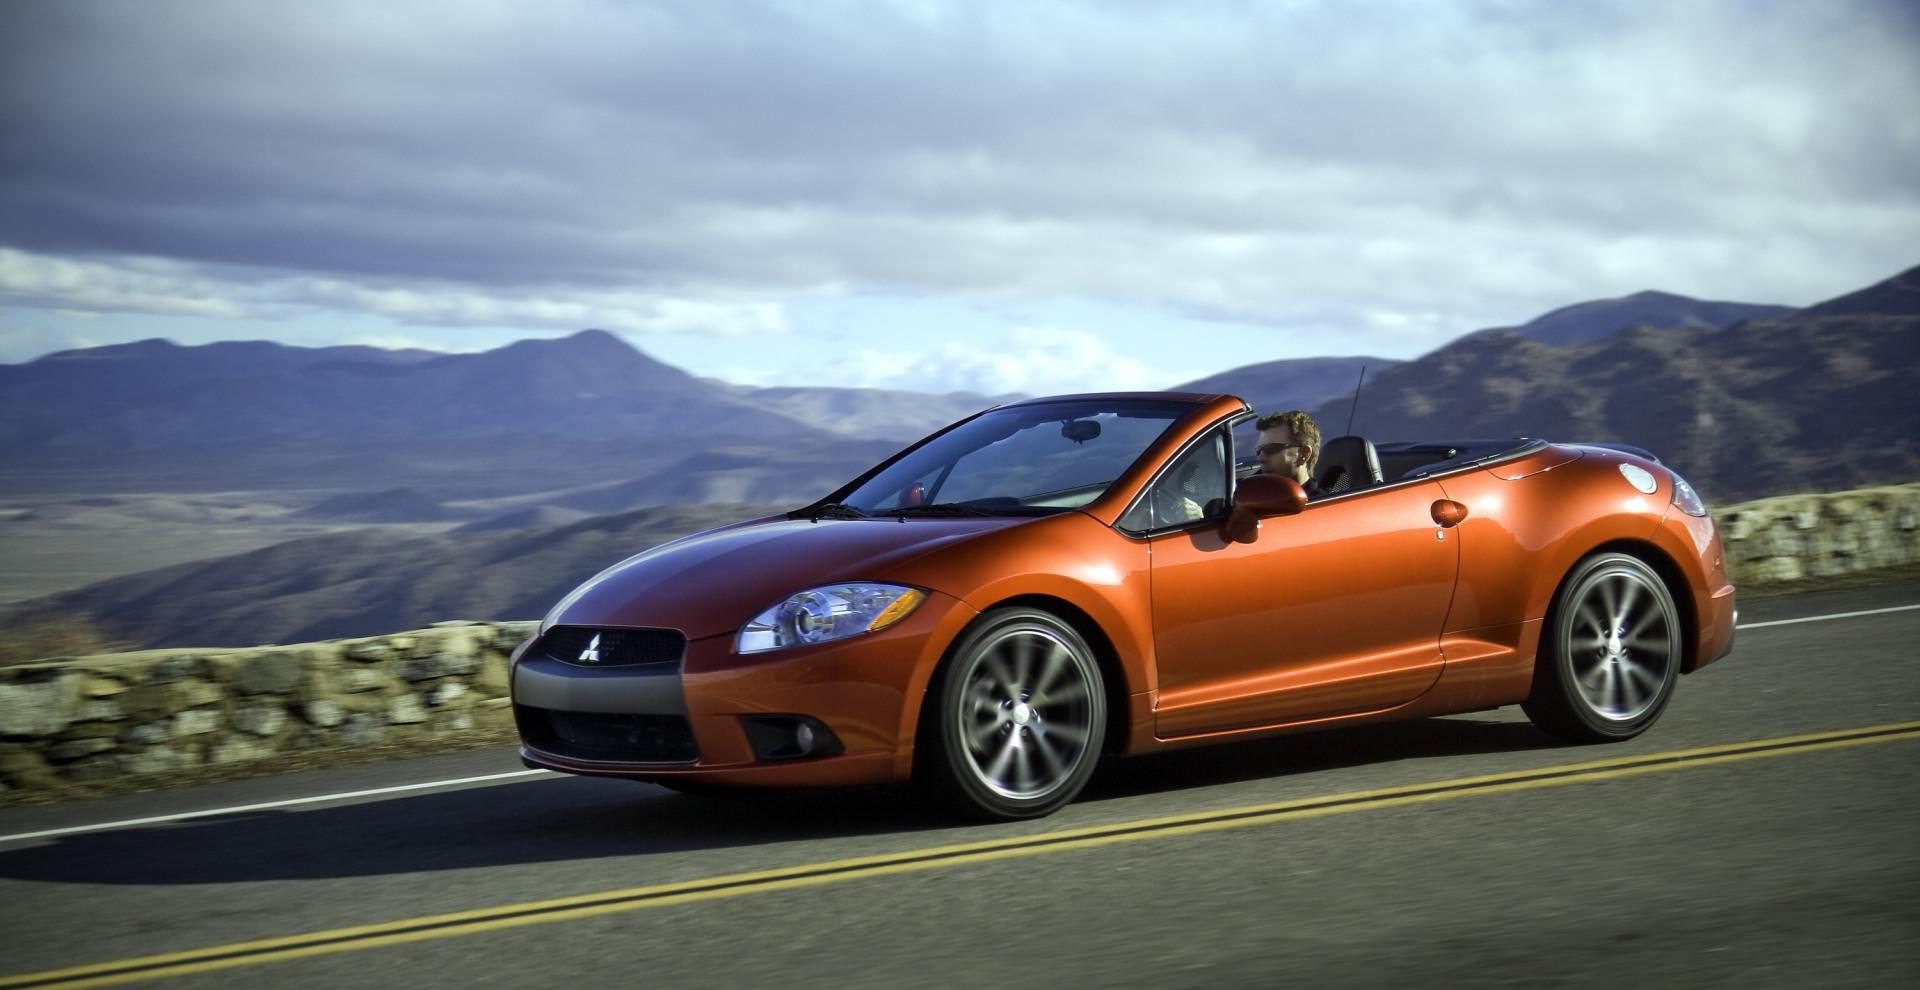 2009 Mitsubishi Eclipse Spyder News And Information Engine Diagram